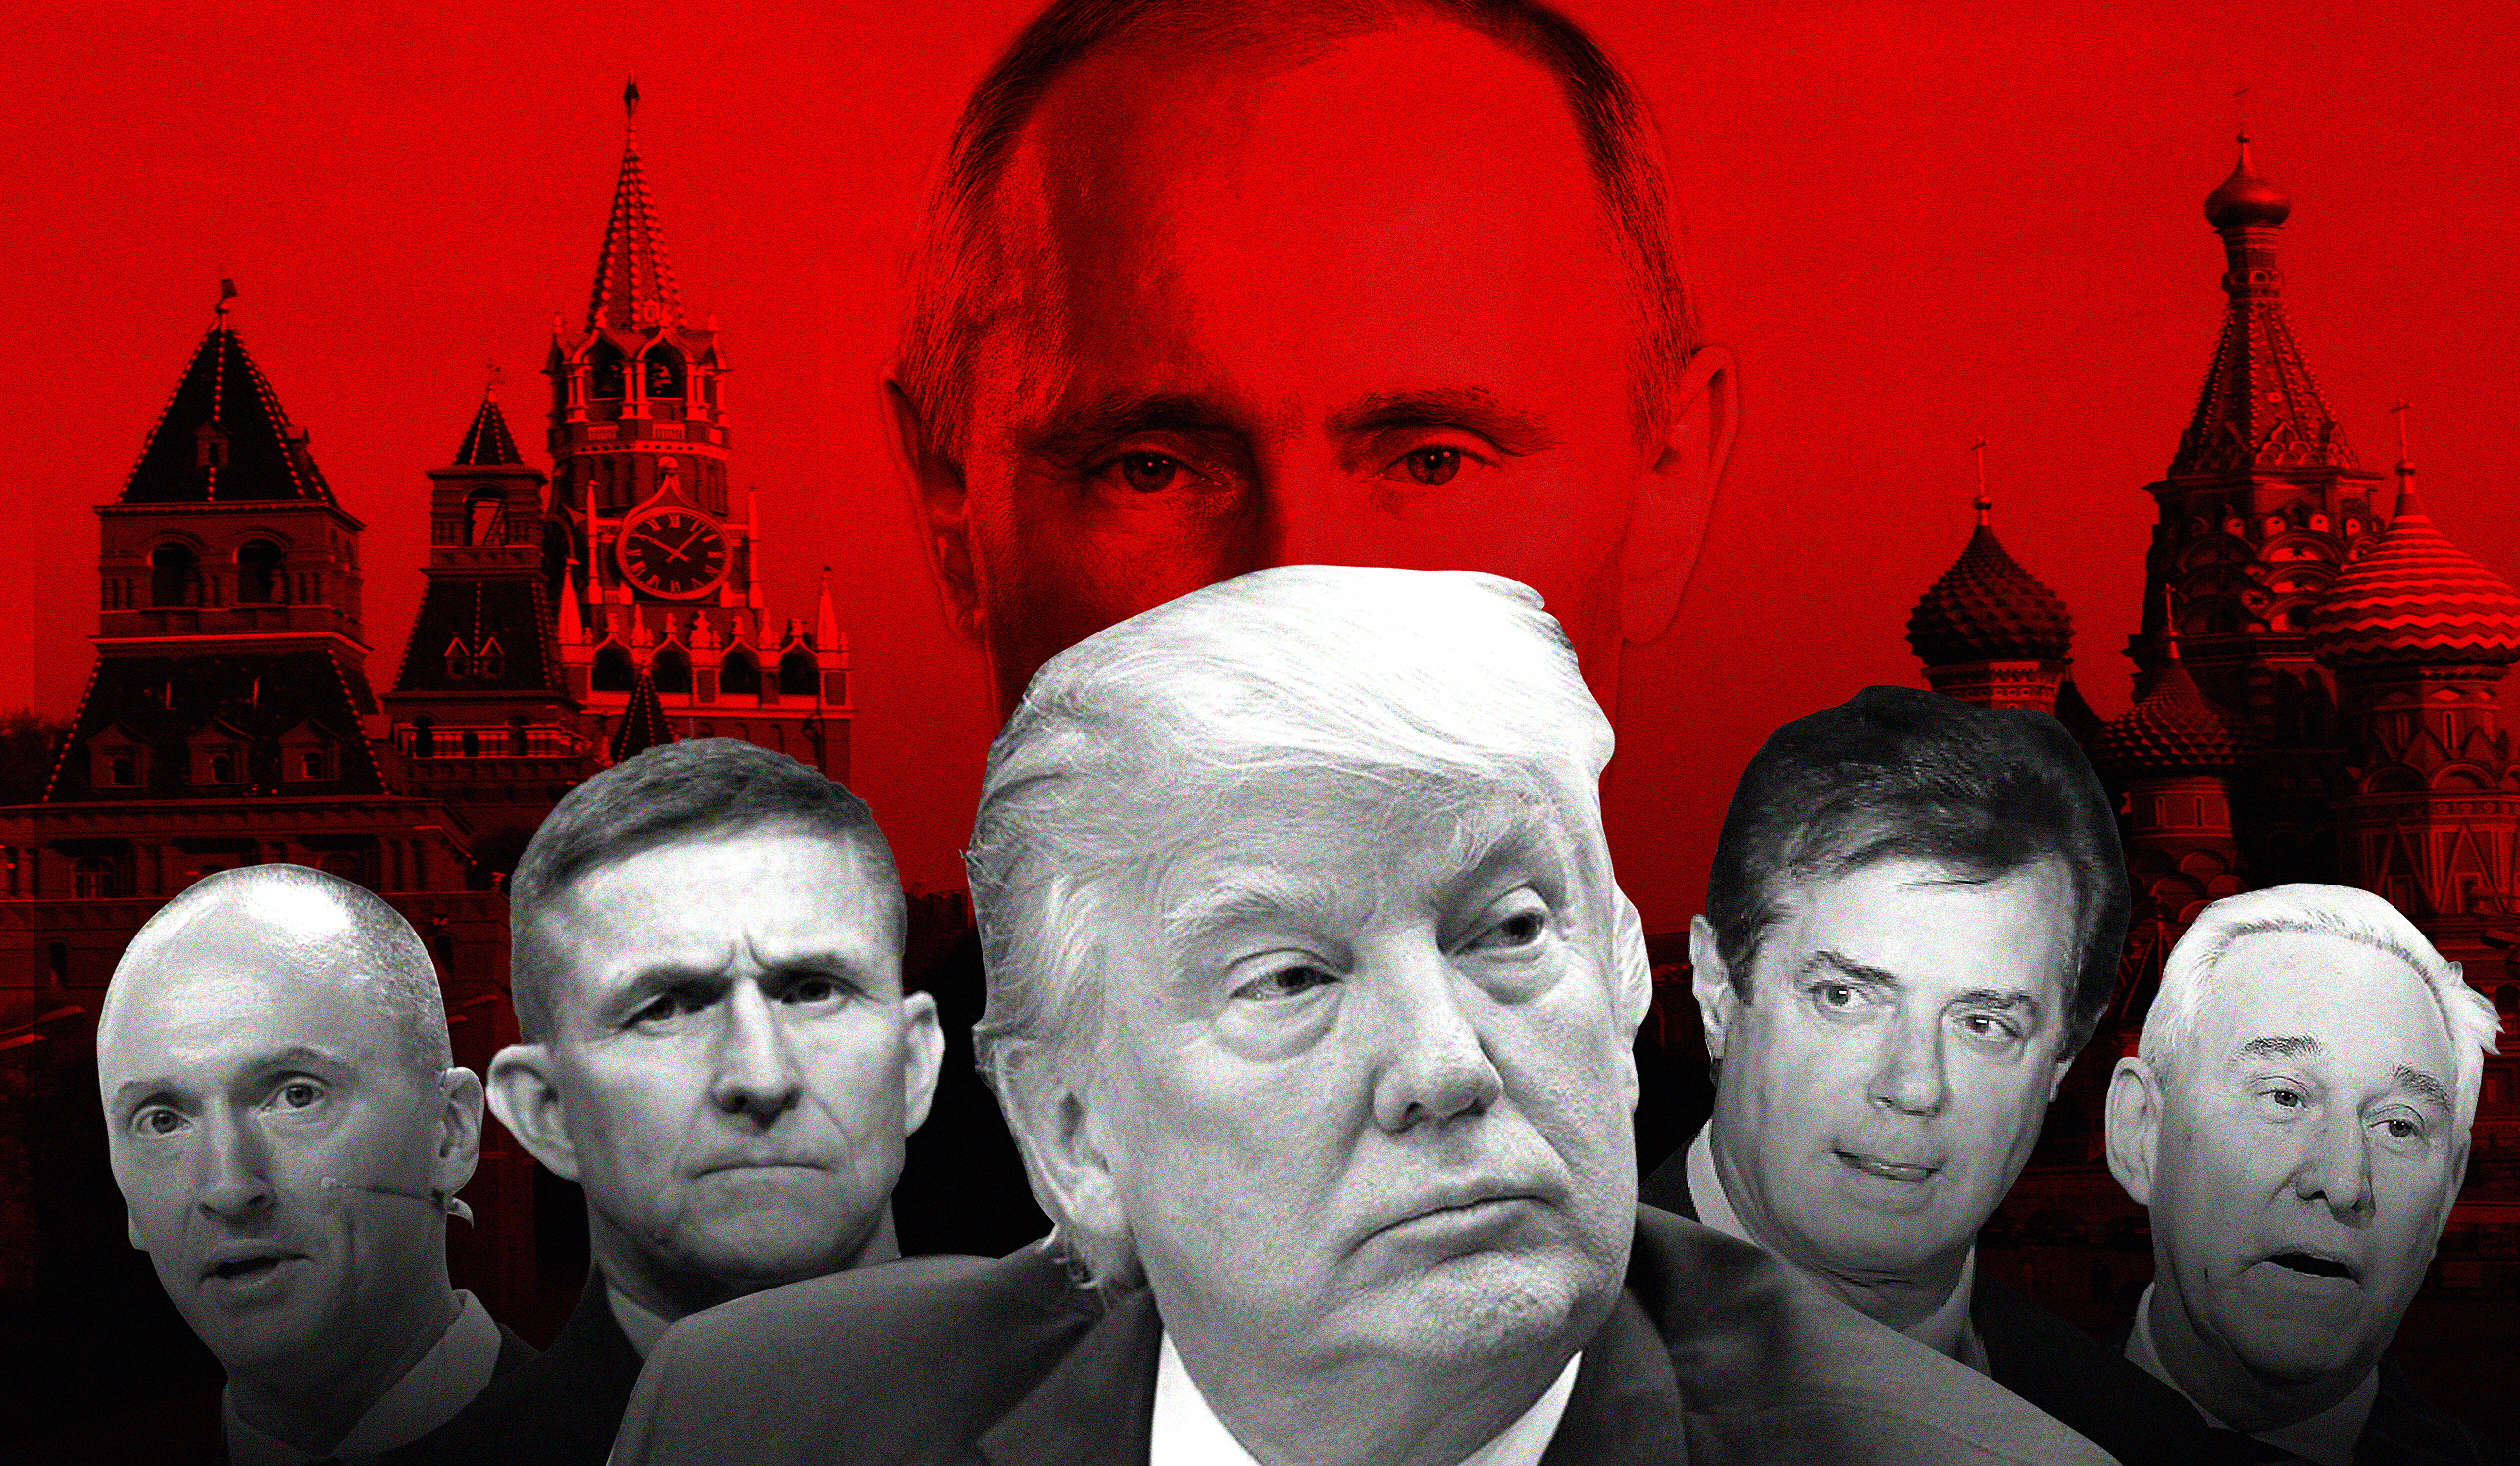 33 questions about Donald Trump and Russia